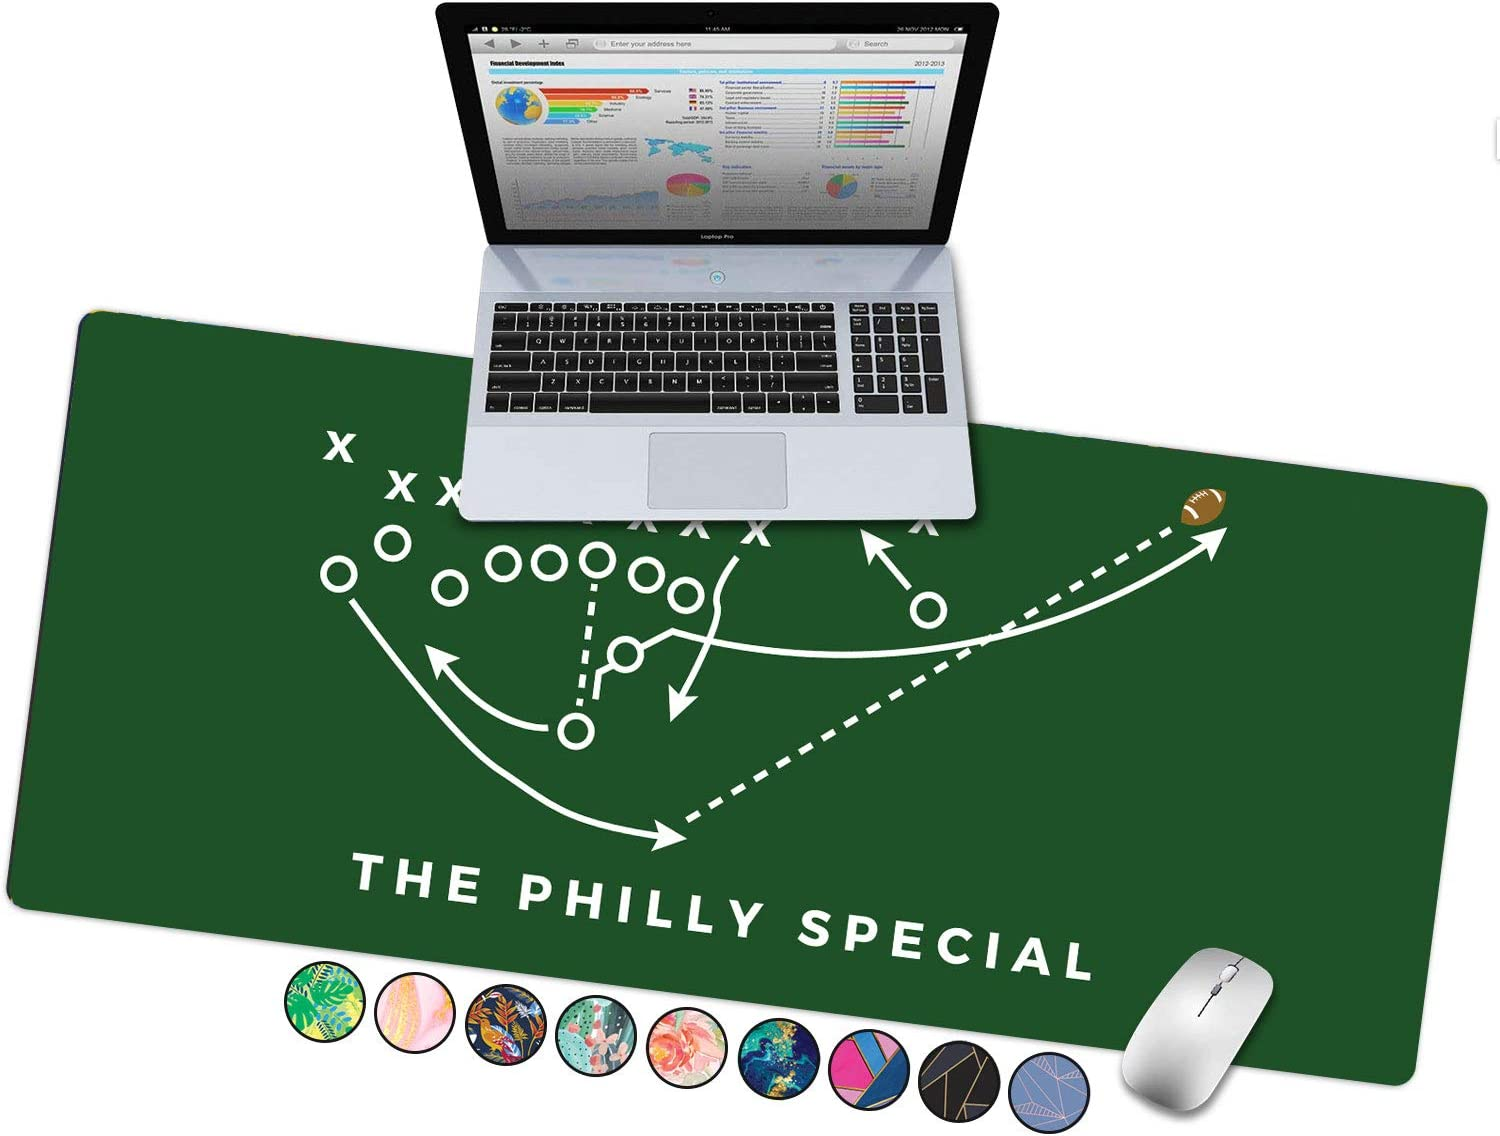 """French Koko Large Keyboard Mouse Pad Desk Mat Desktop Home Office Big Extended Laptop Protector Computer Accessories Mousepad Gaming Philadelphia Sports Team Eagles XL 31""""x15"""" (The Philly Special)"""